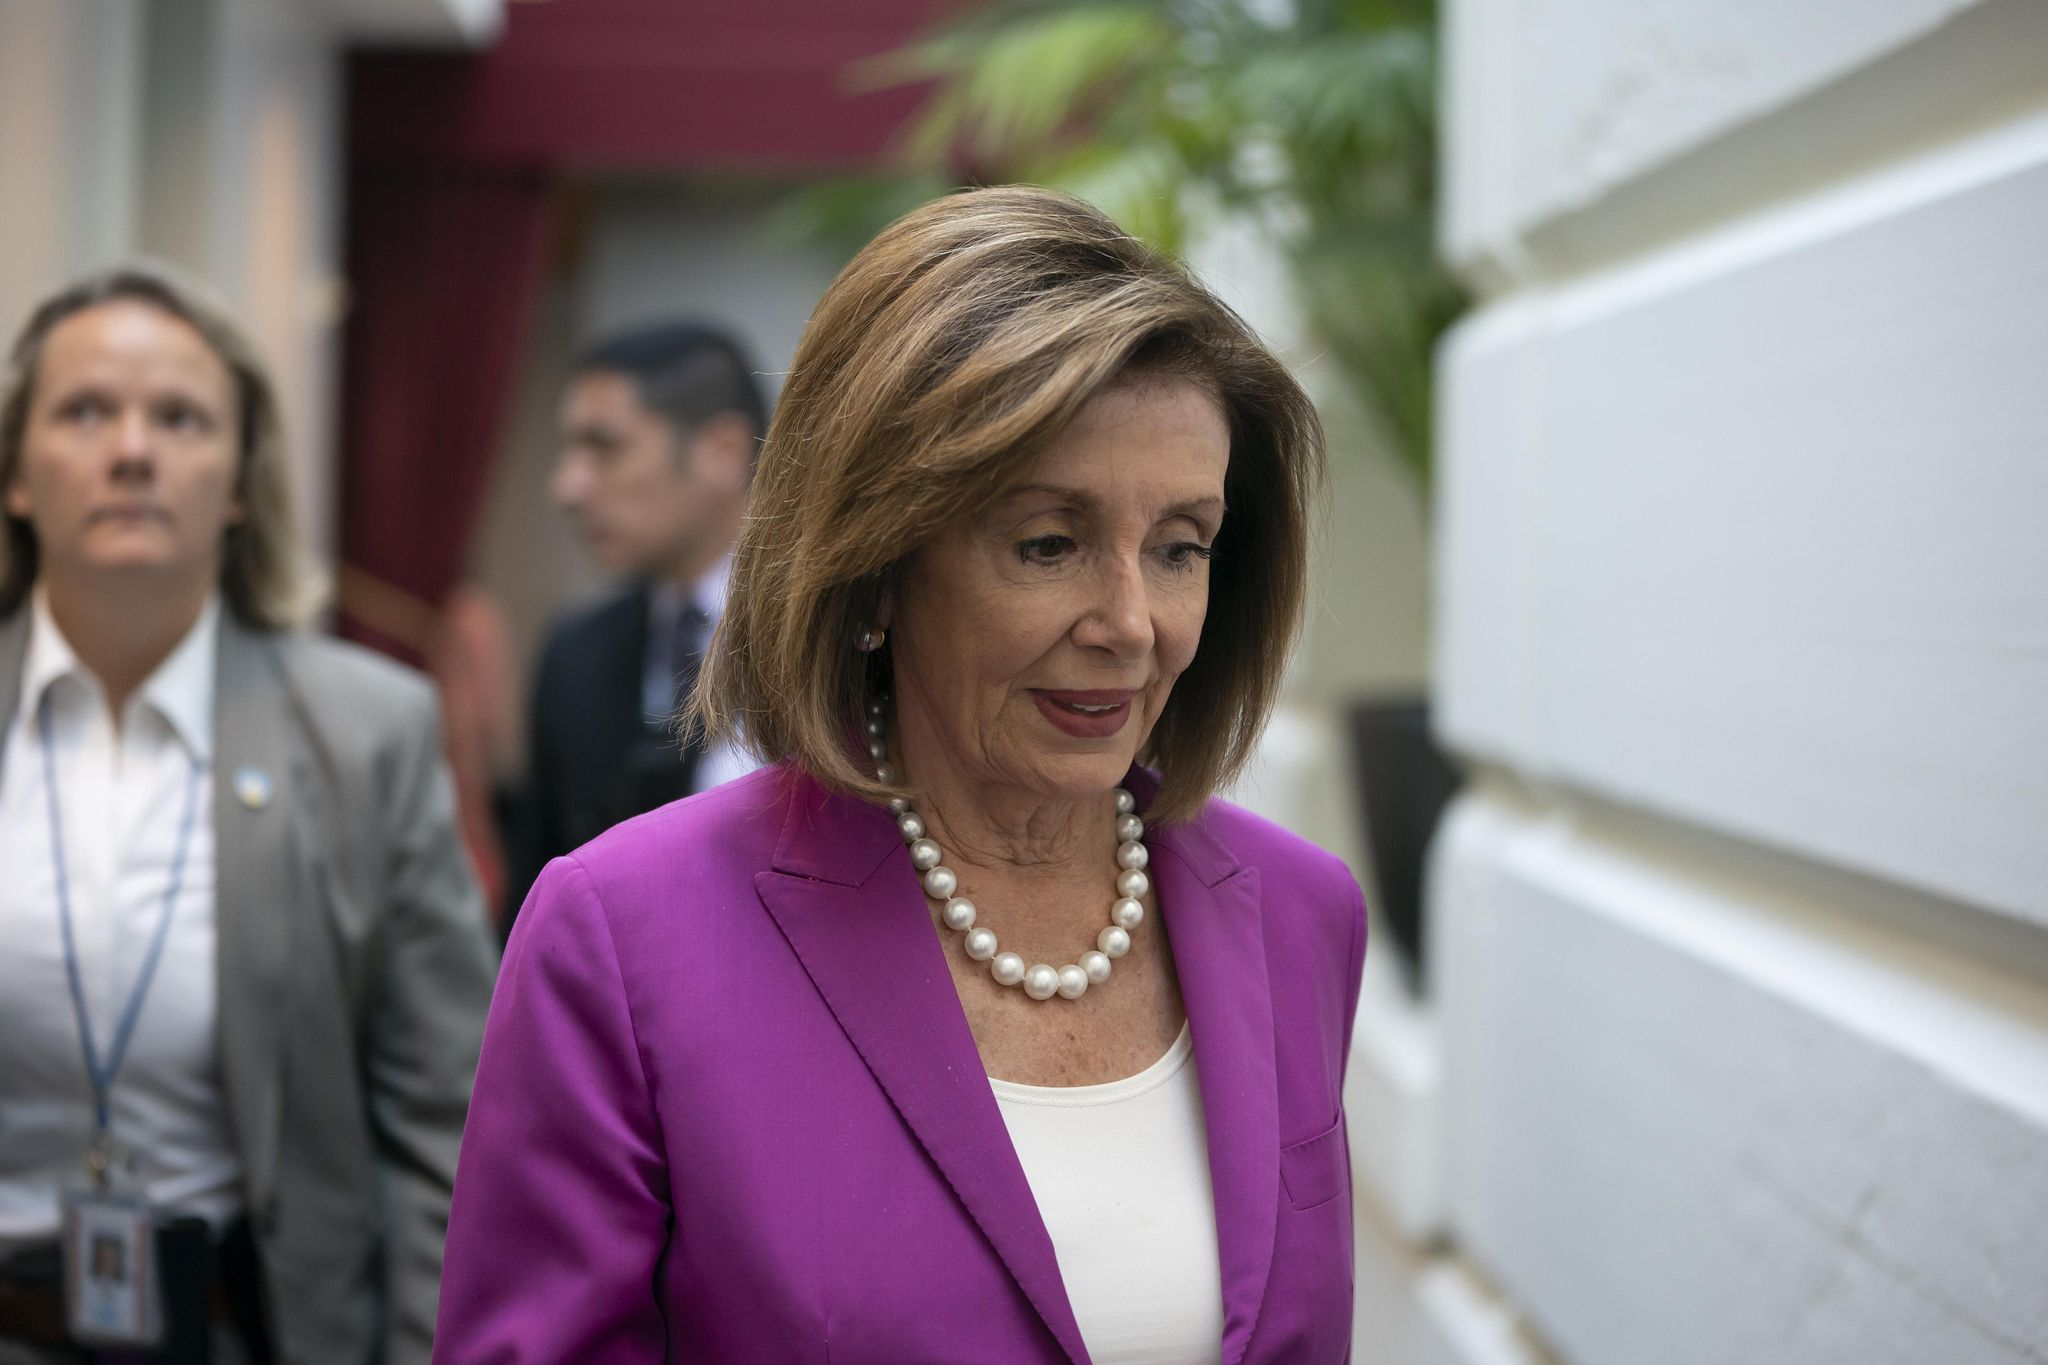 House decides Nancy Pelosi's criticism of Trump violates chamber rules